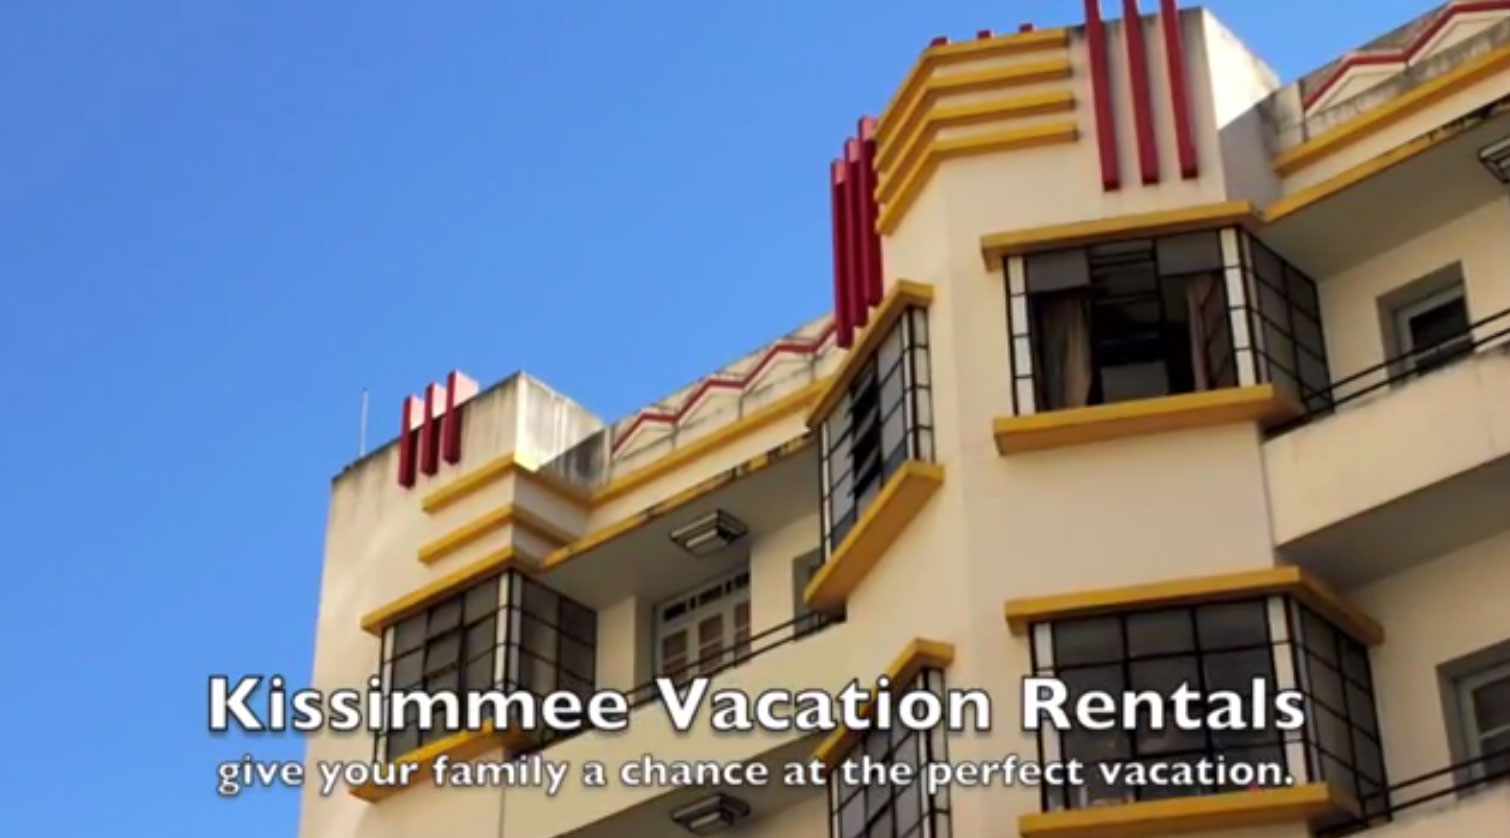 Kissimmee Vacation Rentals